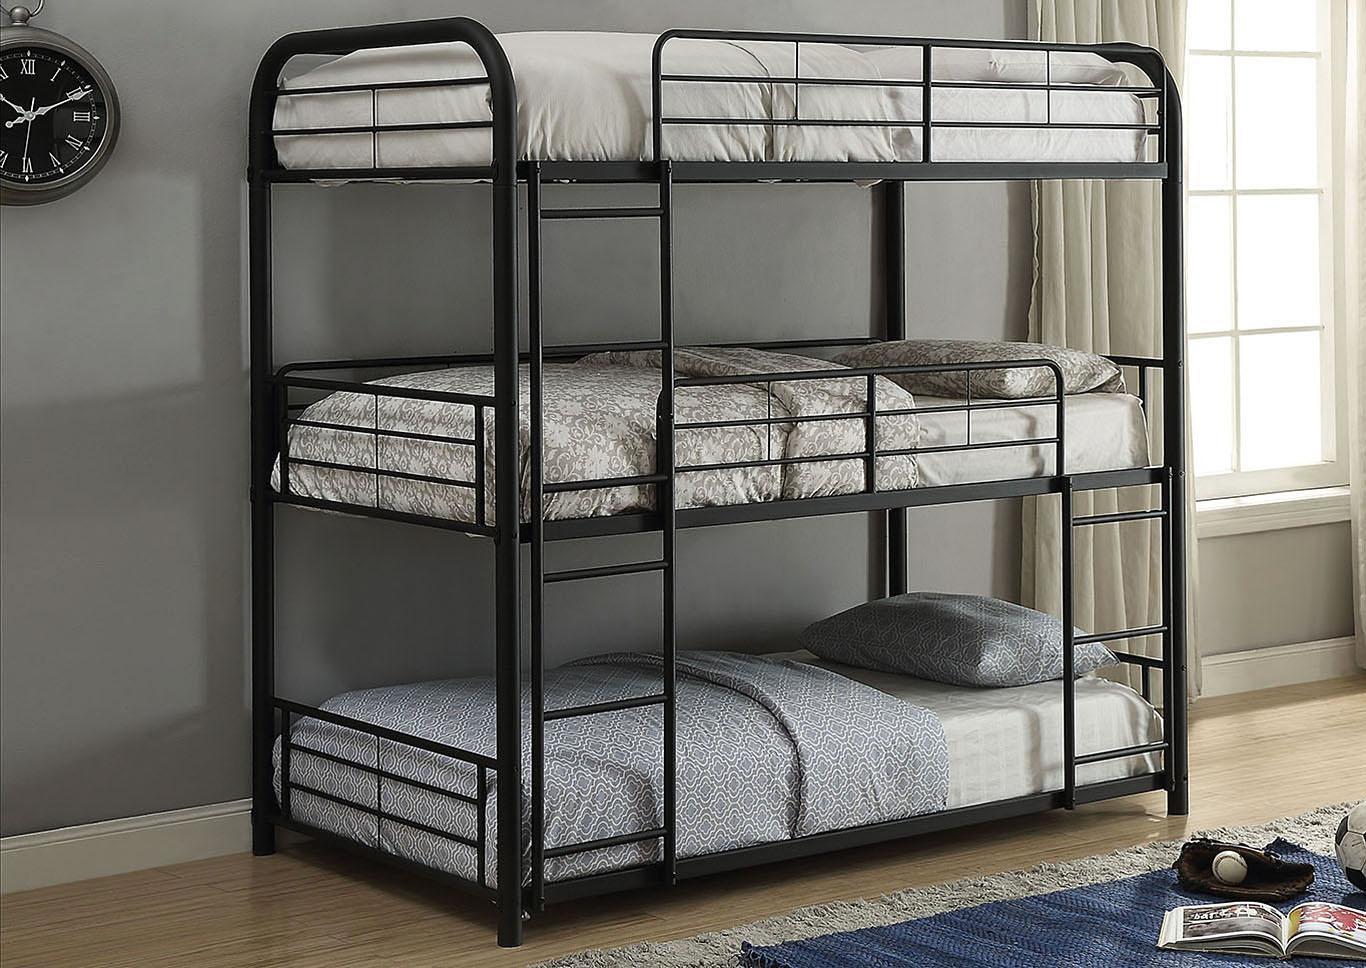 Cairo Sandy Black Bunk Bed - Triple Full,Acme